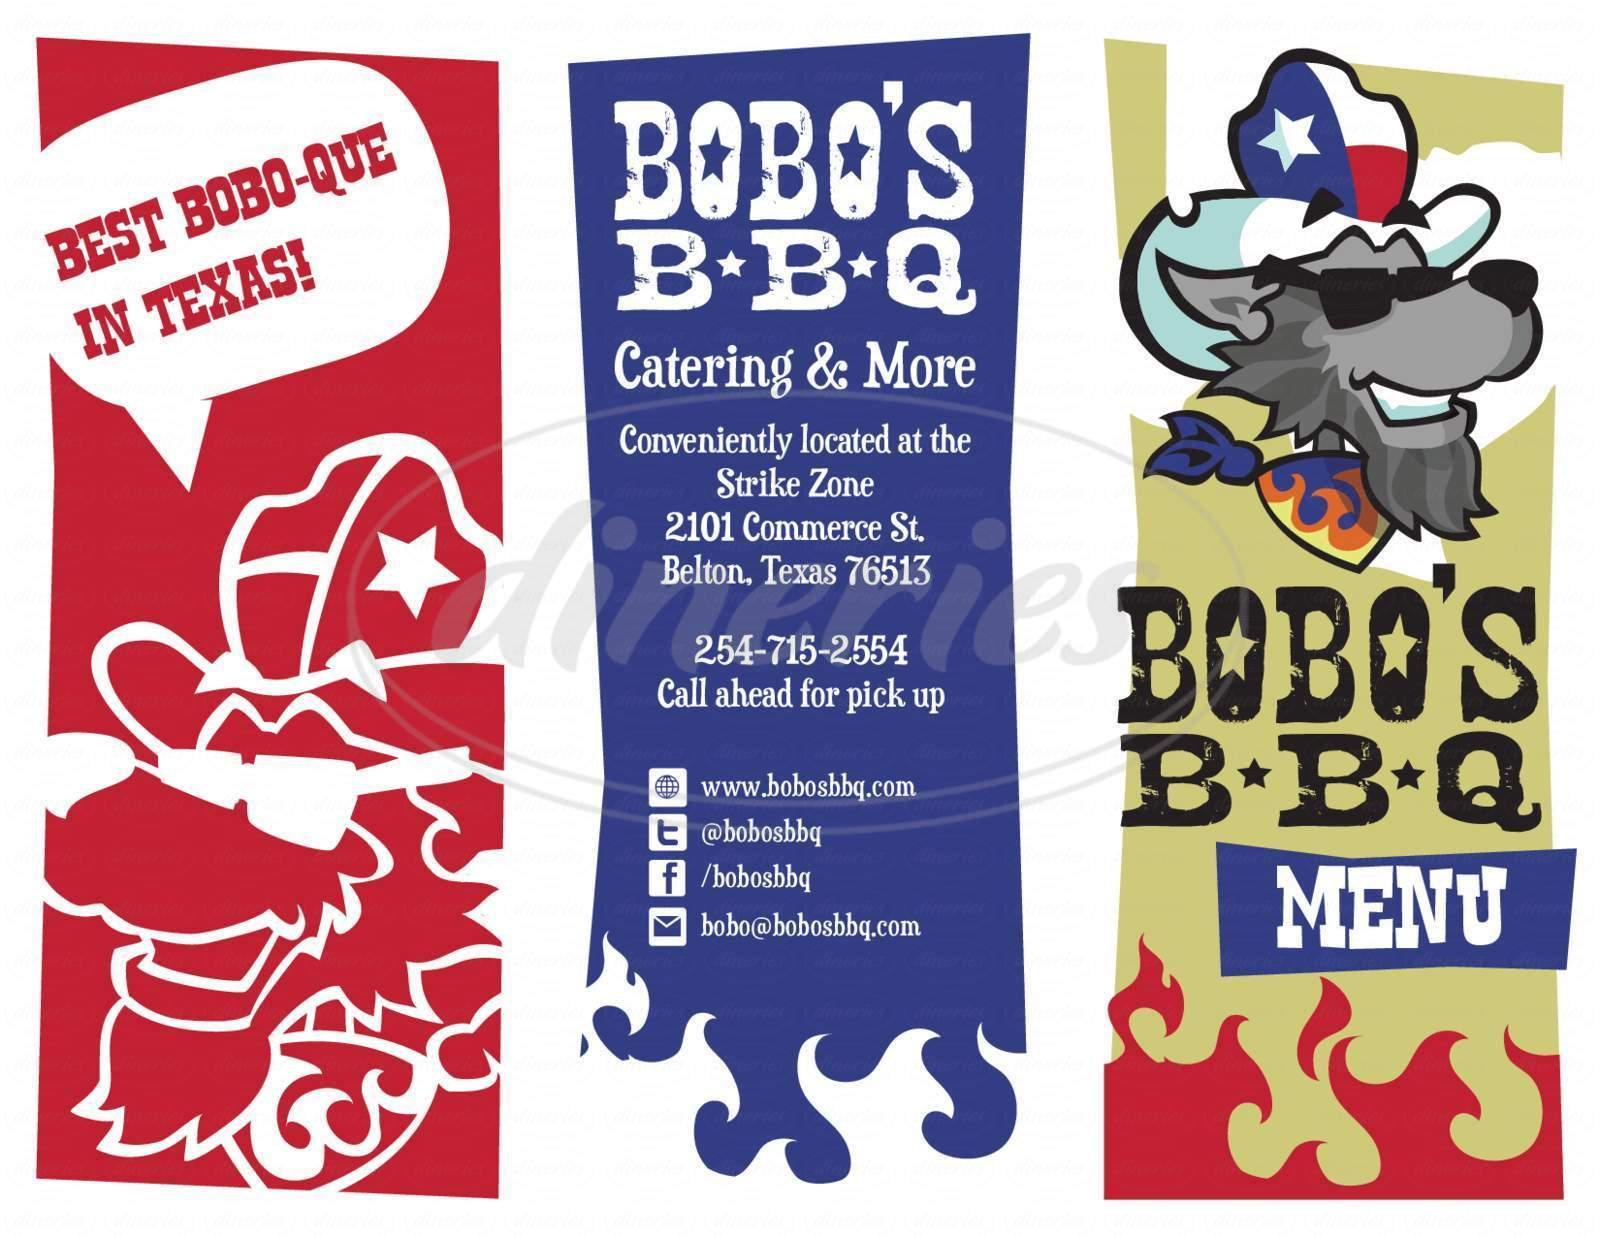 menu for Bobo's BBQ